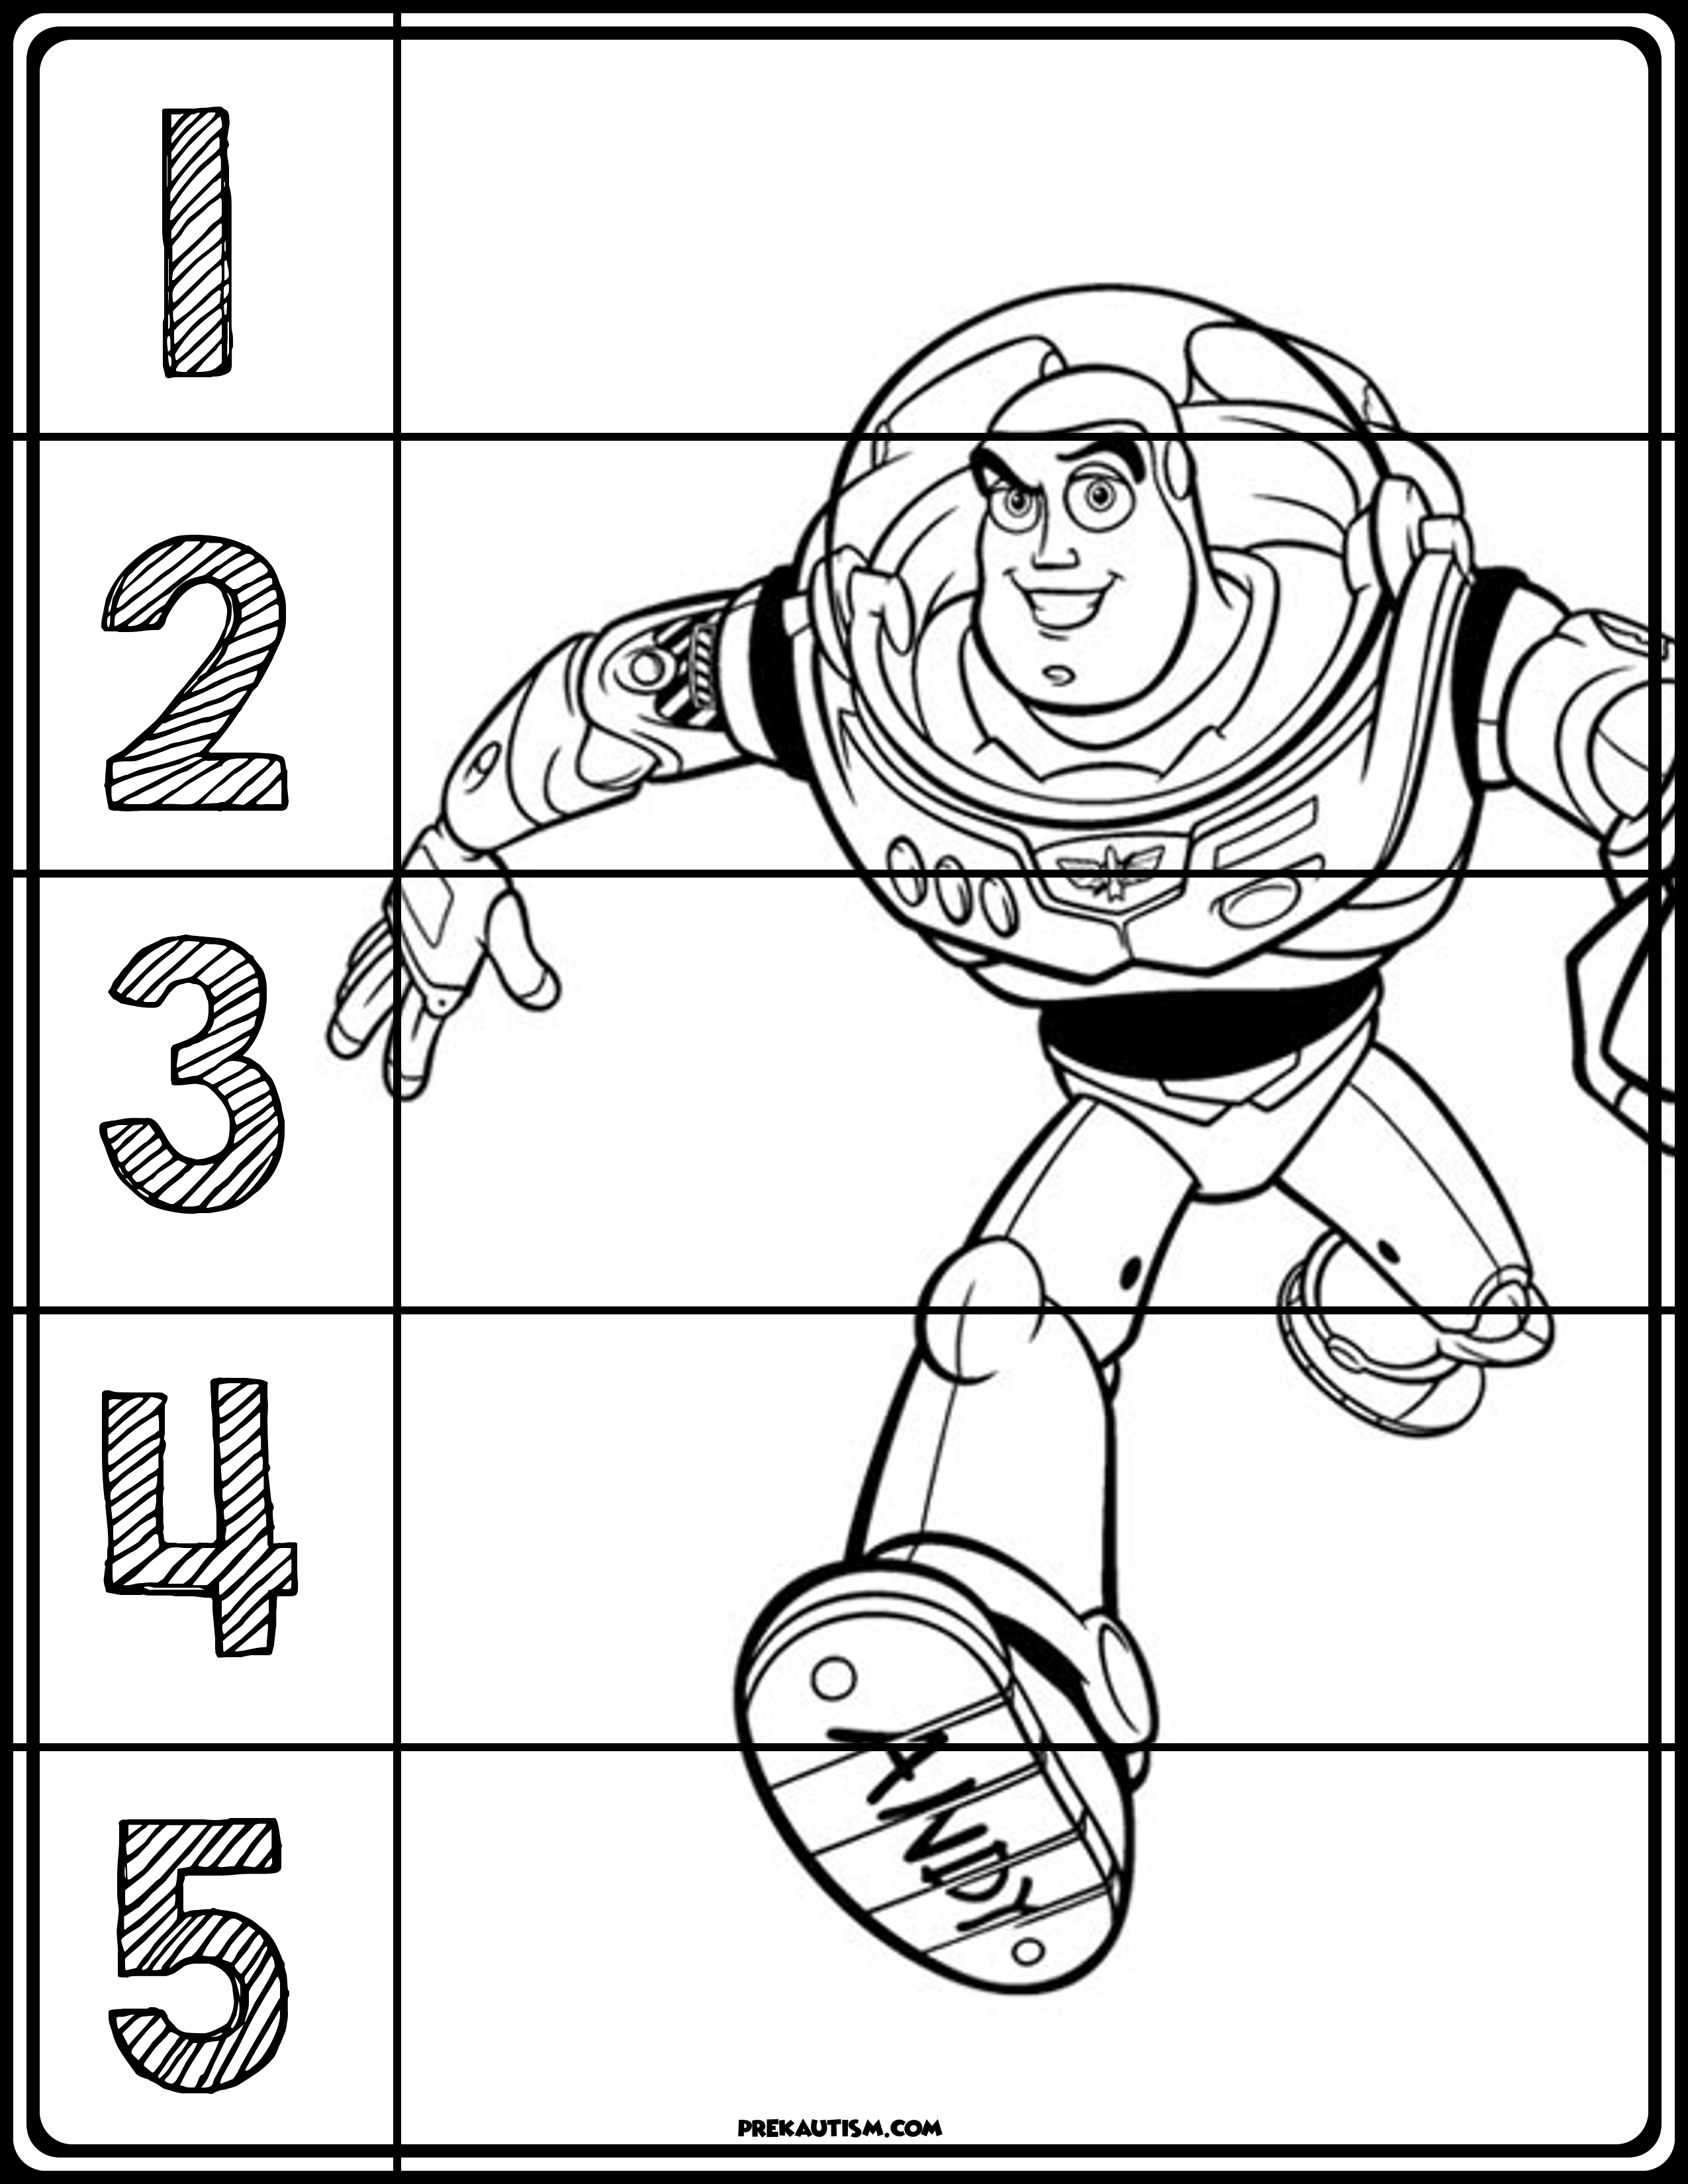 Toy Story Puzzles (With images) | Toy story, Color ...